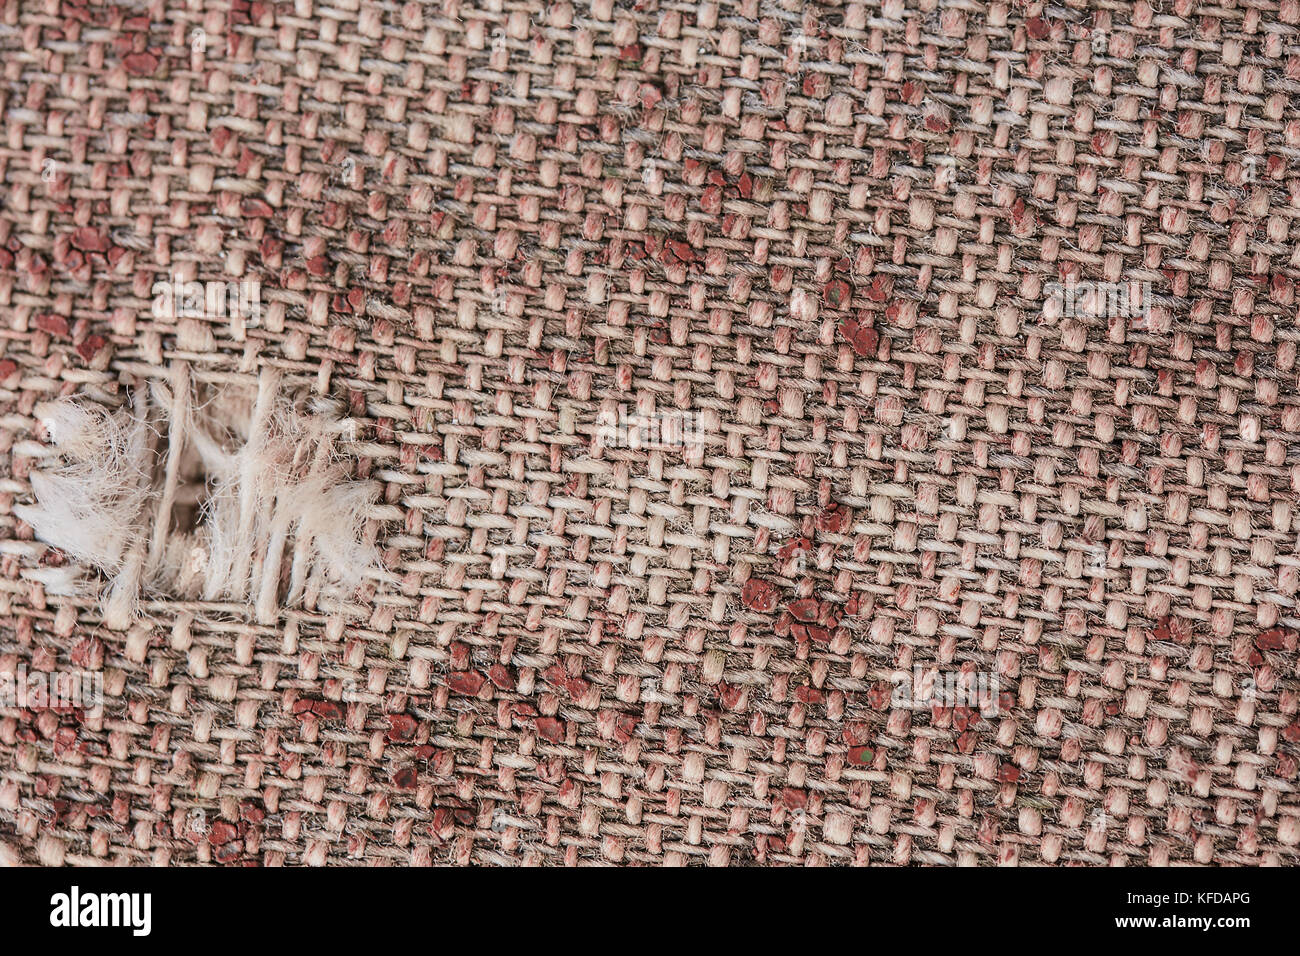 old leather upholstery texture - Stock Image